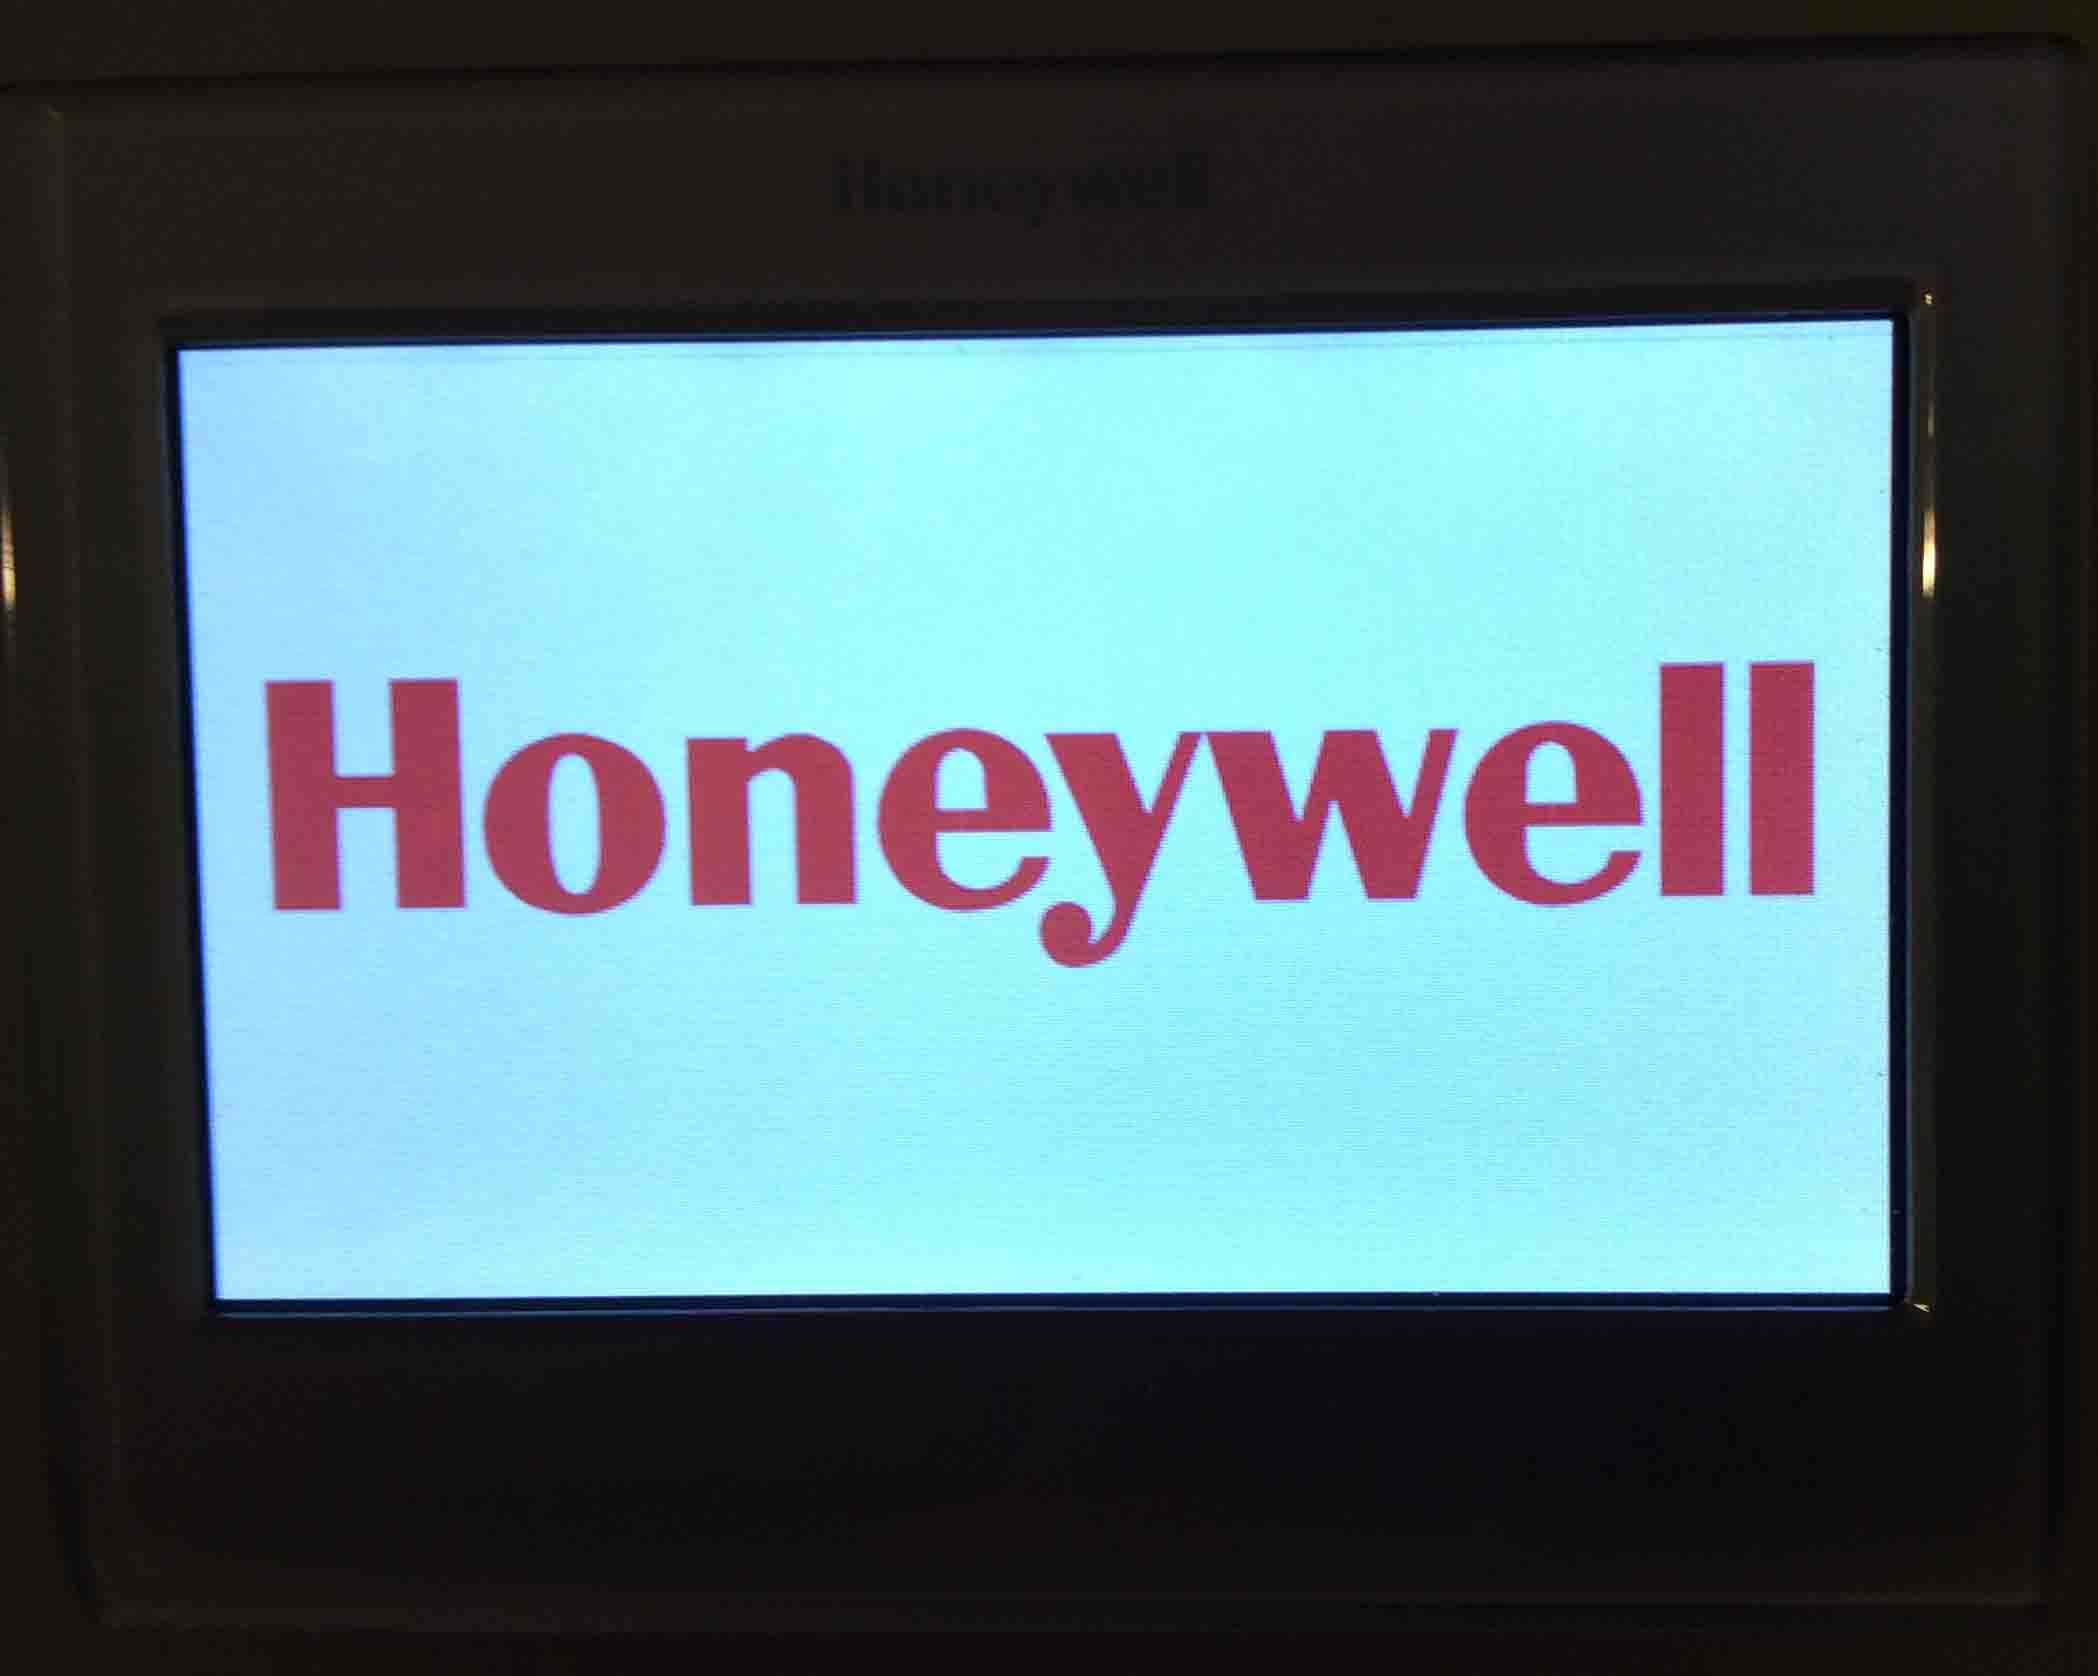 Honeywell smart thermostat wiring instructions rth9580wf tom's on honeywell 9000 thermostat wiring diagram honeywell 9000 user guide Honeywell RTH2410 Wiring